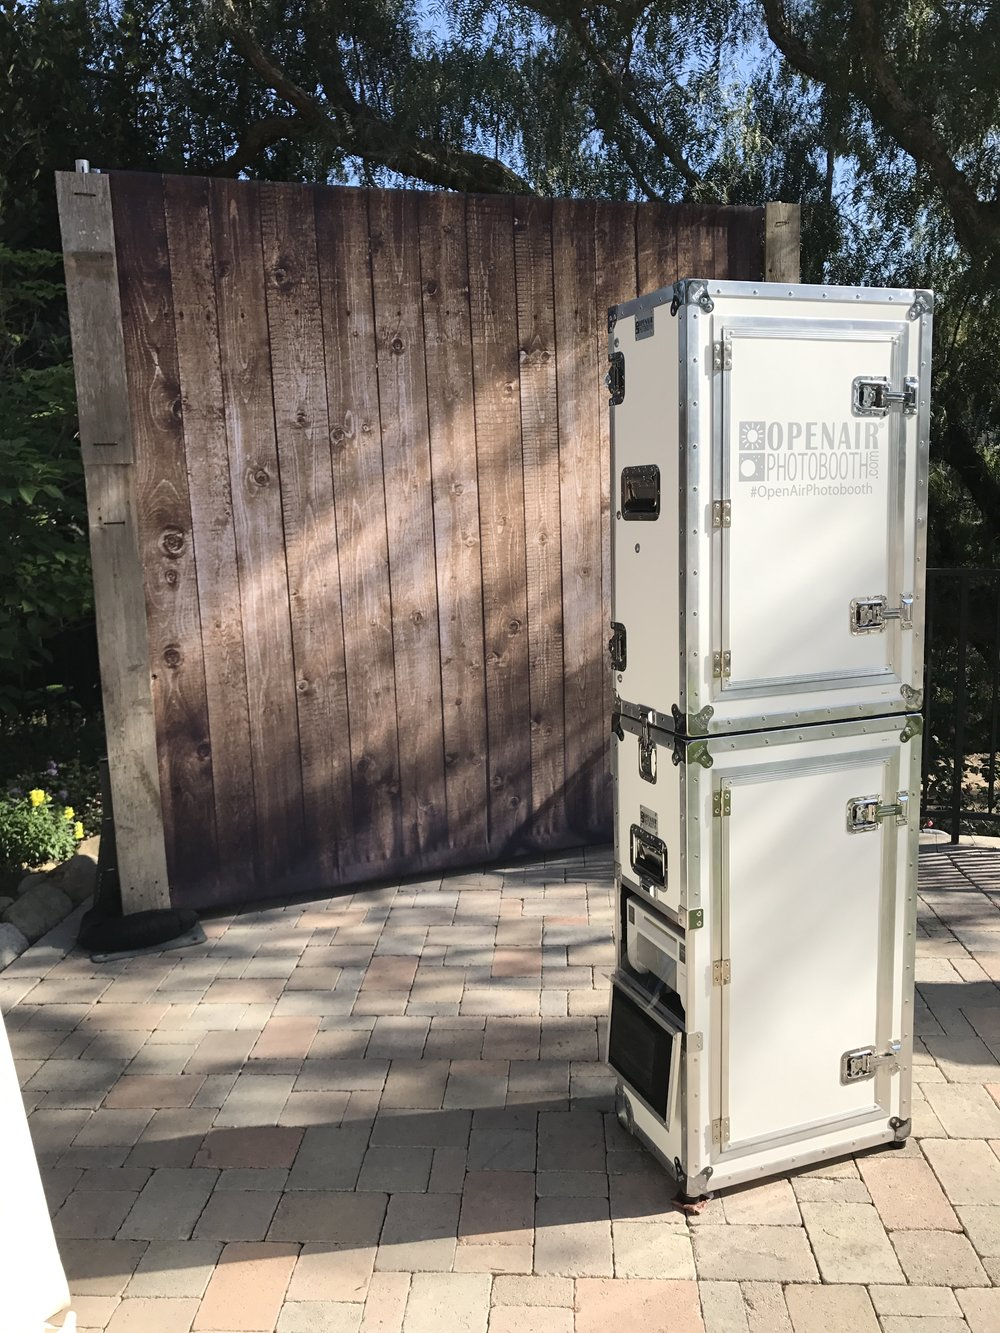 Photo Booth (5 hours) - $750 (tap for backdrop)